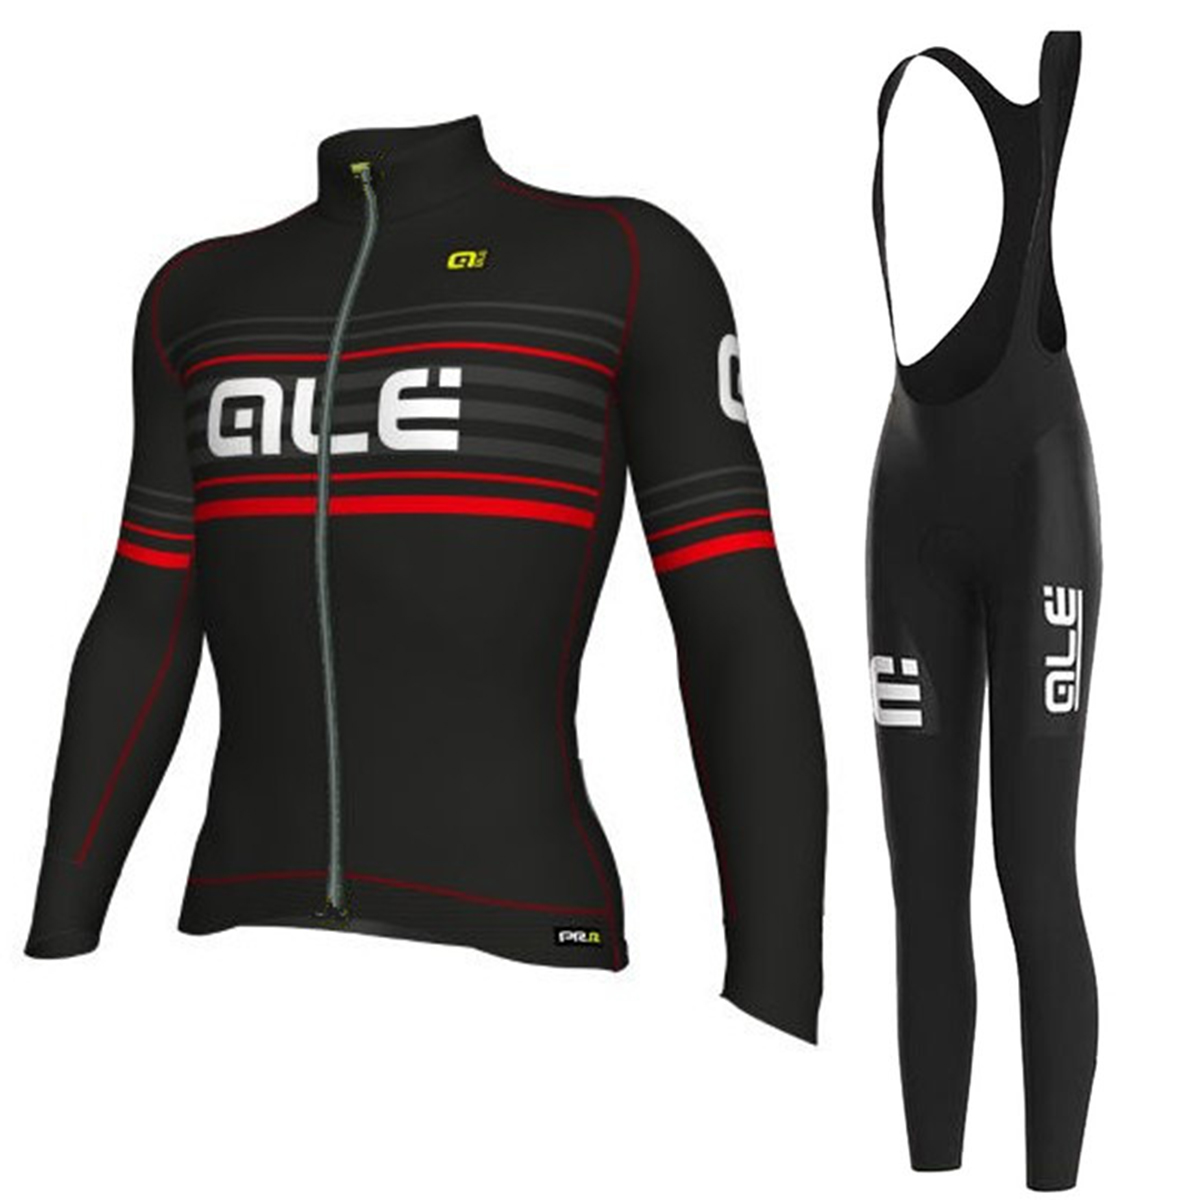 2017 ALE New Long Sleeves Spring/Autumn Cycling Jersey Bib Set Breathable Bicycle Clothing Ropa Maillot Ciclismo with 9D Gel Pad 2018 pro team ale cycling jersey bicycle clothing short sleeve shirt 9d pad bib shorts set breathable quick dry ropa ciclismo